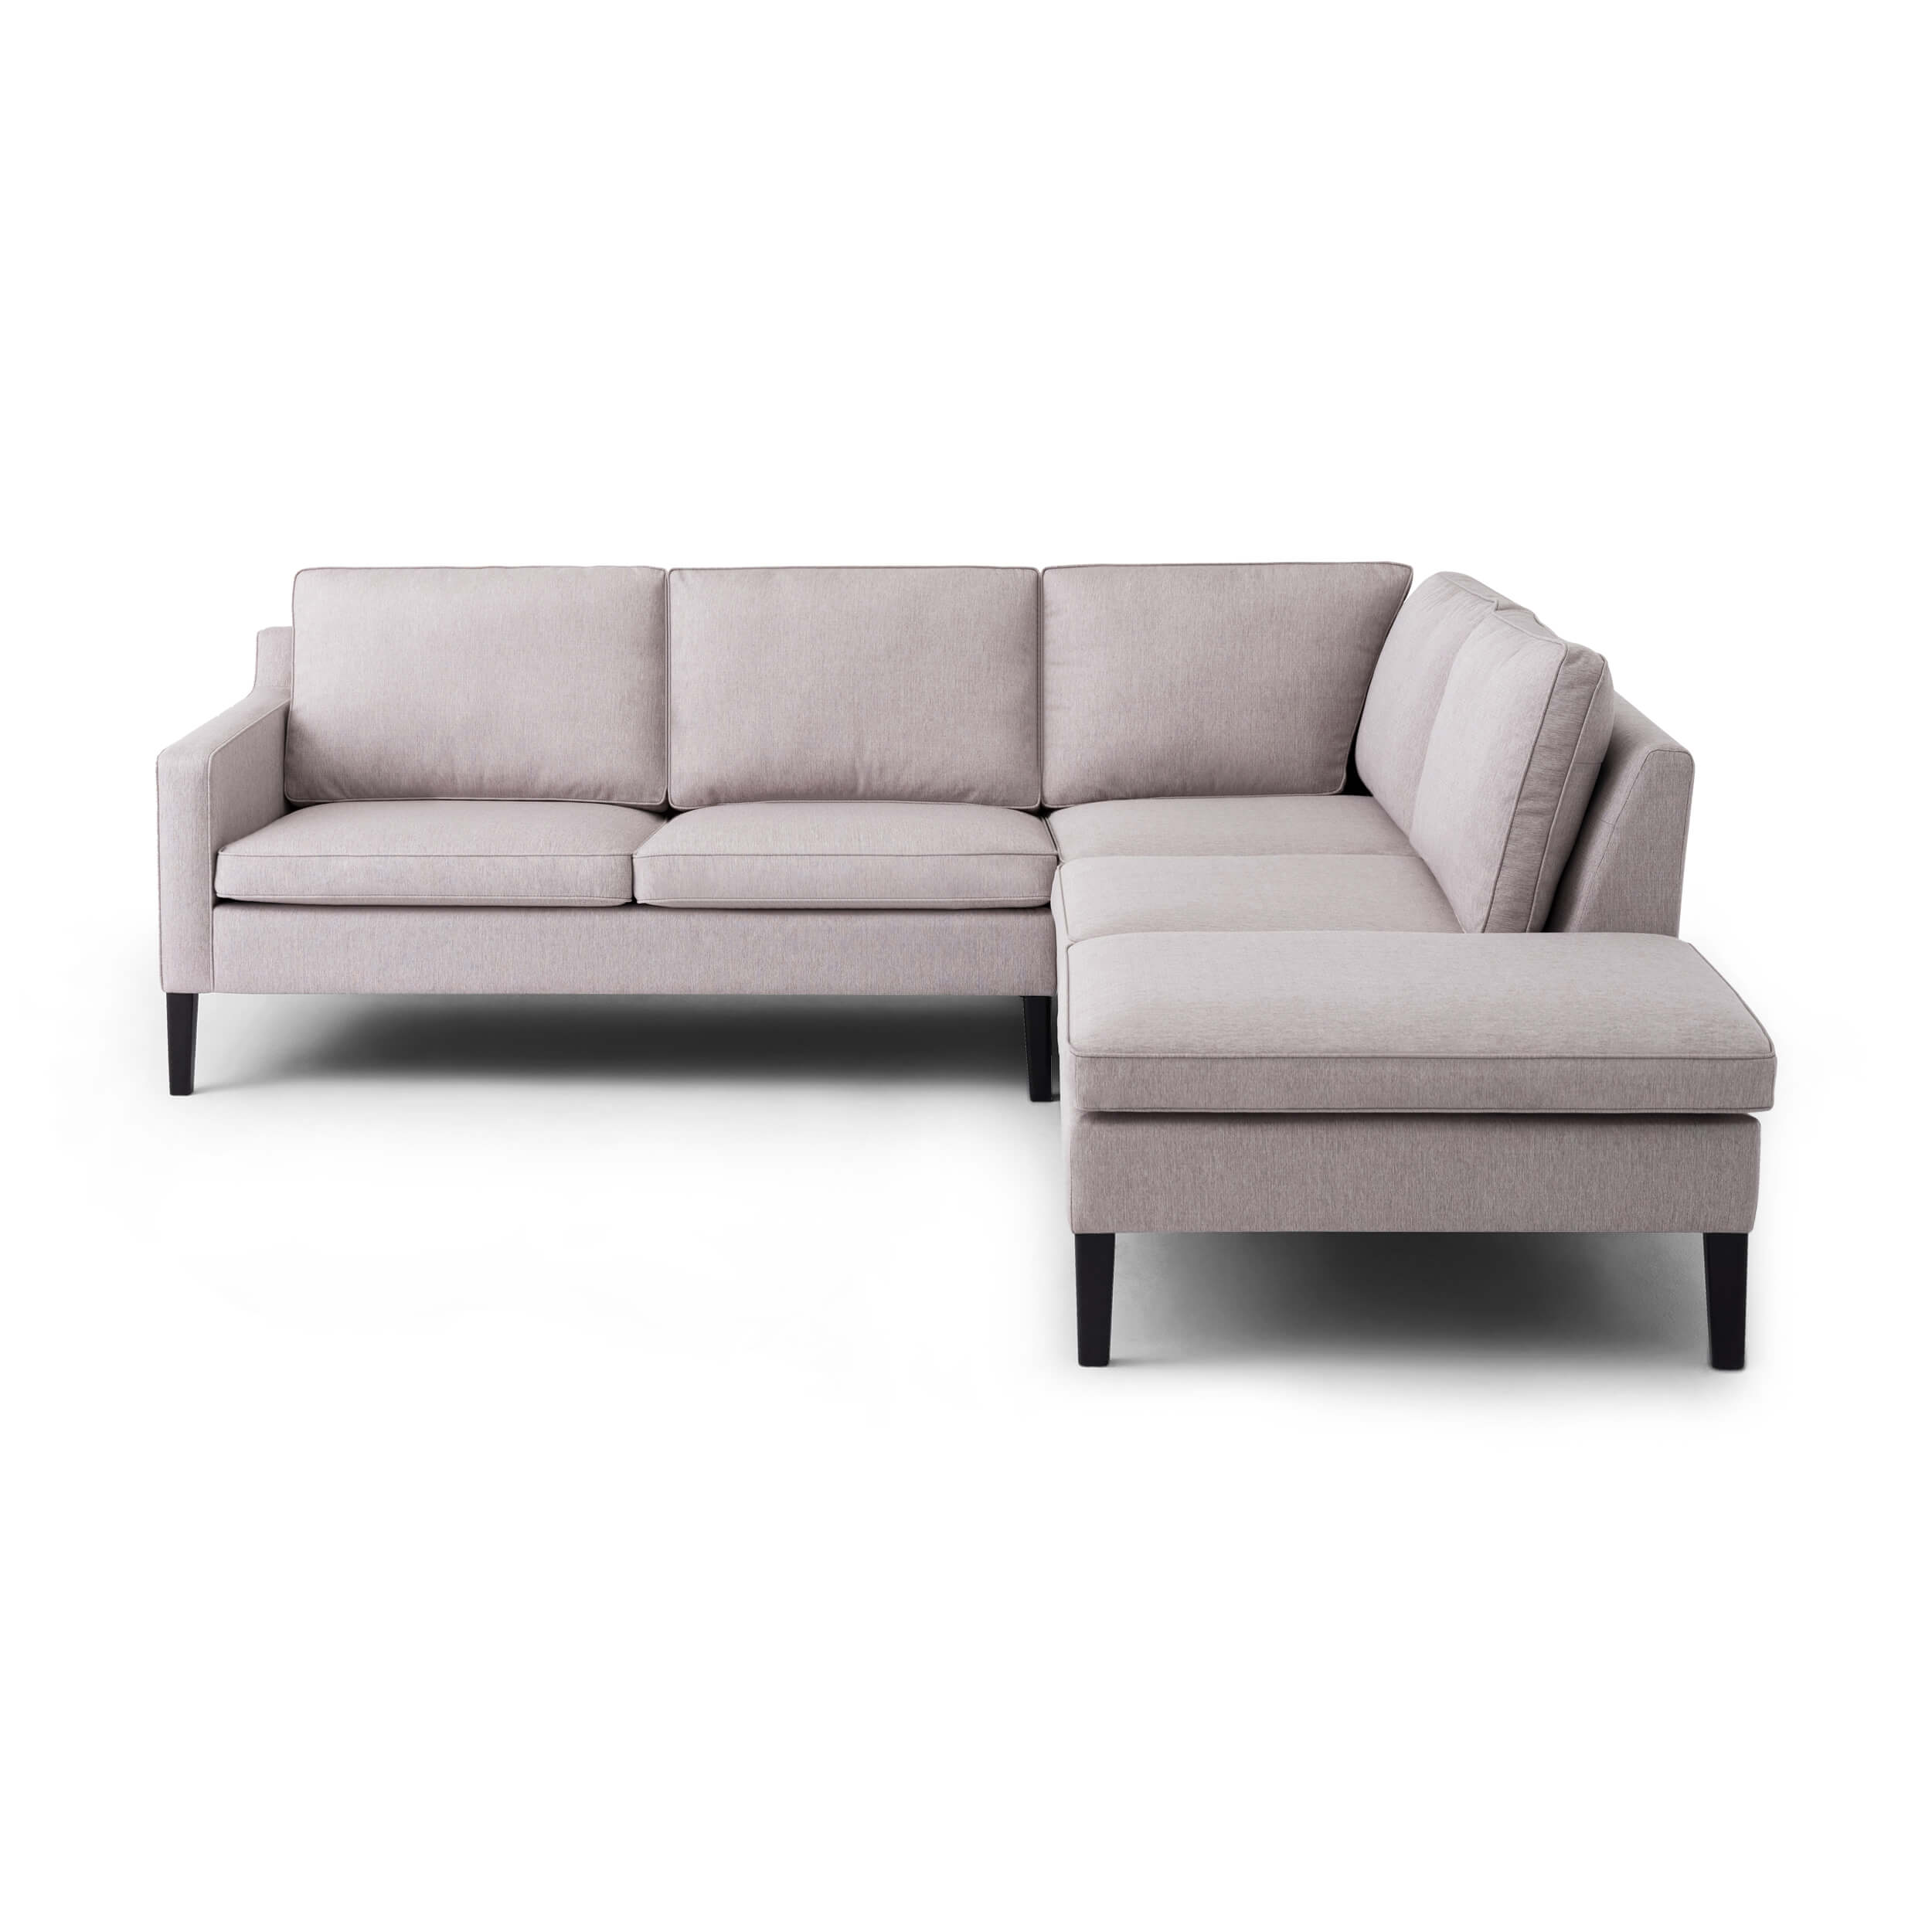 Skye 2-piece Sectional Sofa With Corner Chaise - Fabric